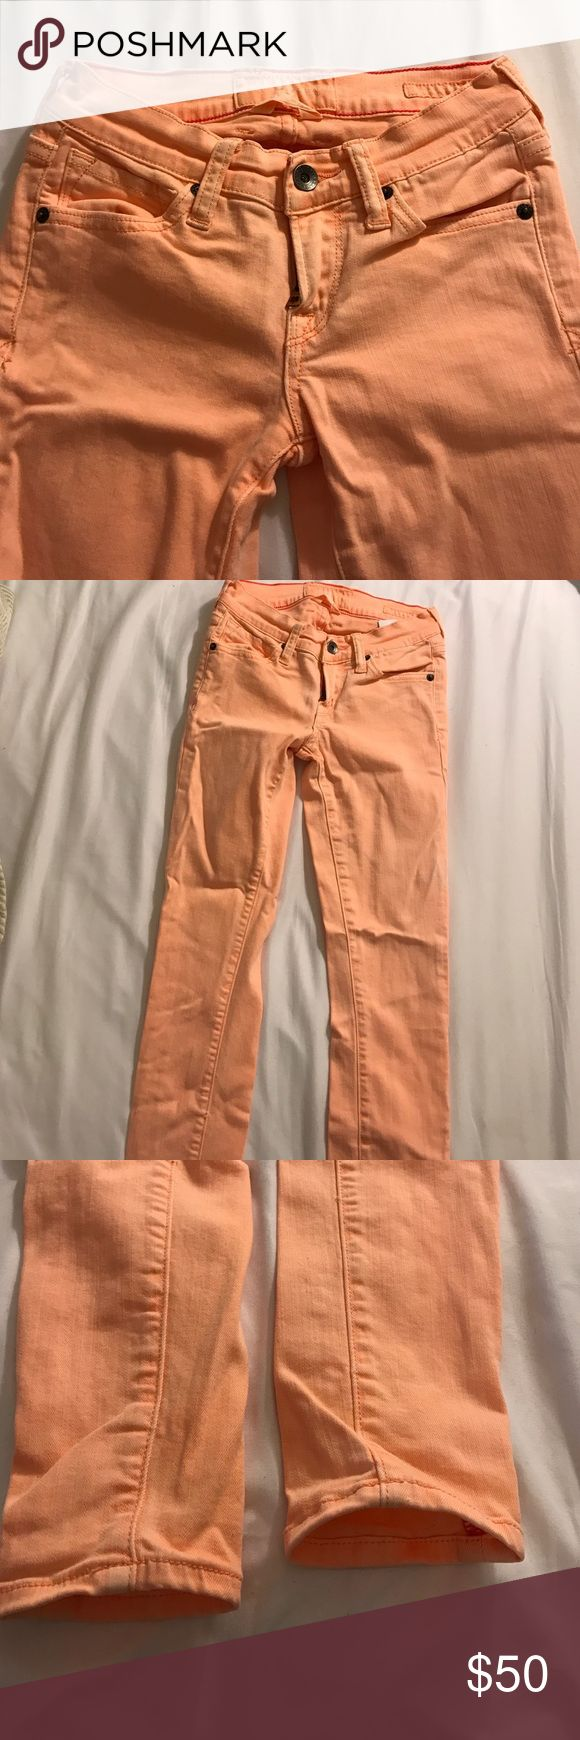 Lucky Brand skinny jeans - peach color Skinny jeans / super cute! Perfect condition Lucky Brand Jeans Skinny